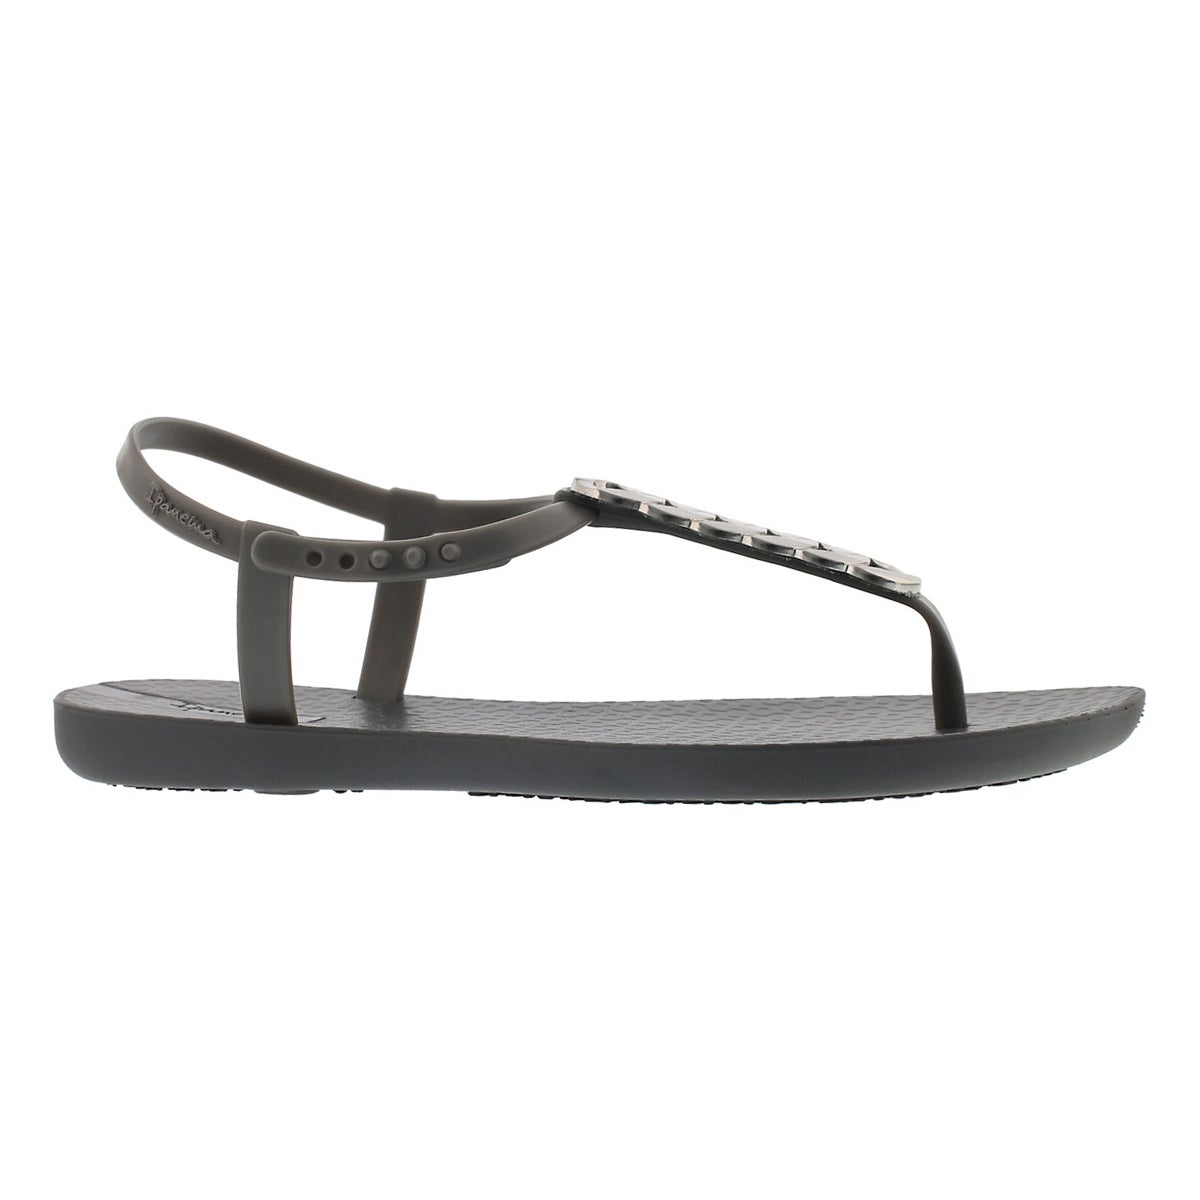 Women's CHARM IV SAND grey t-strap sandals